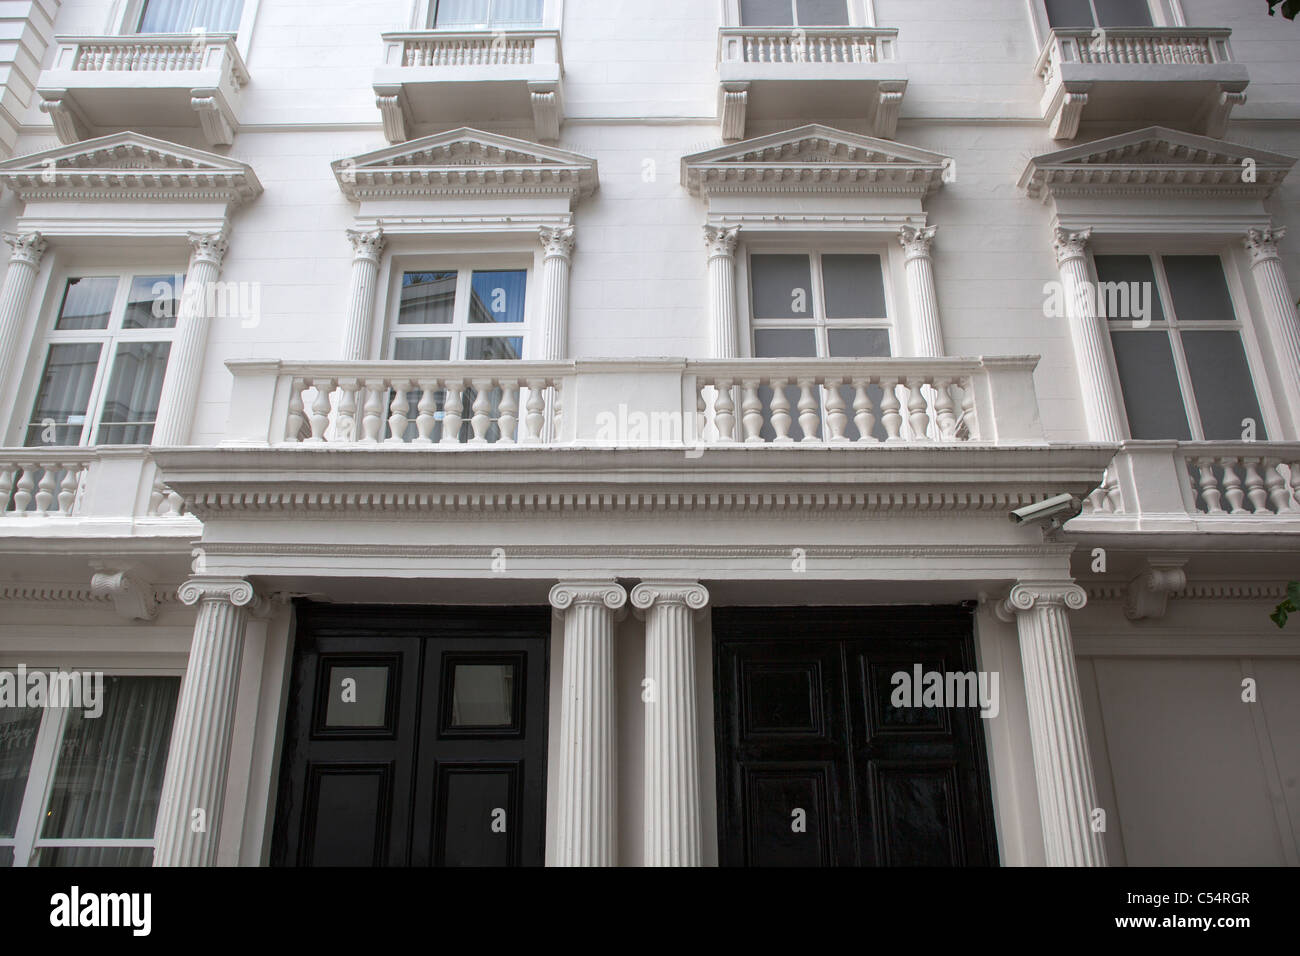 23 and 24 Leinster Gardens London with False Building Facade - Stock Image